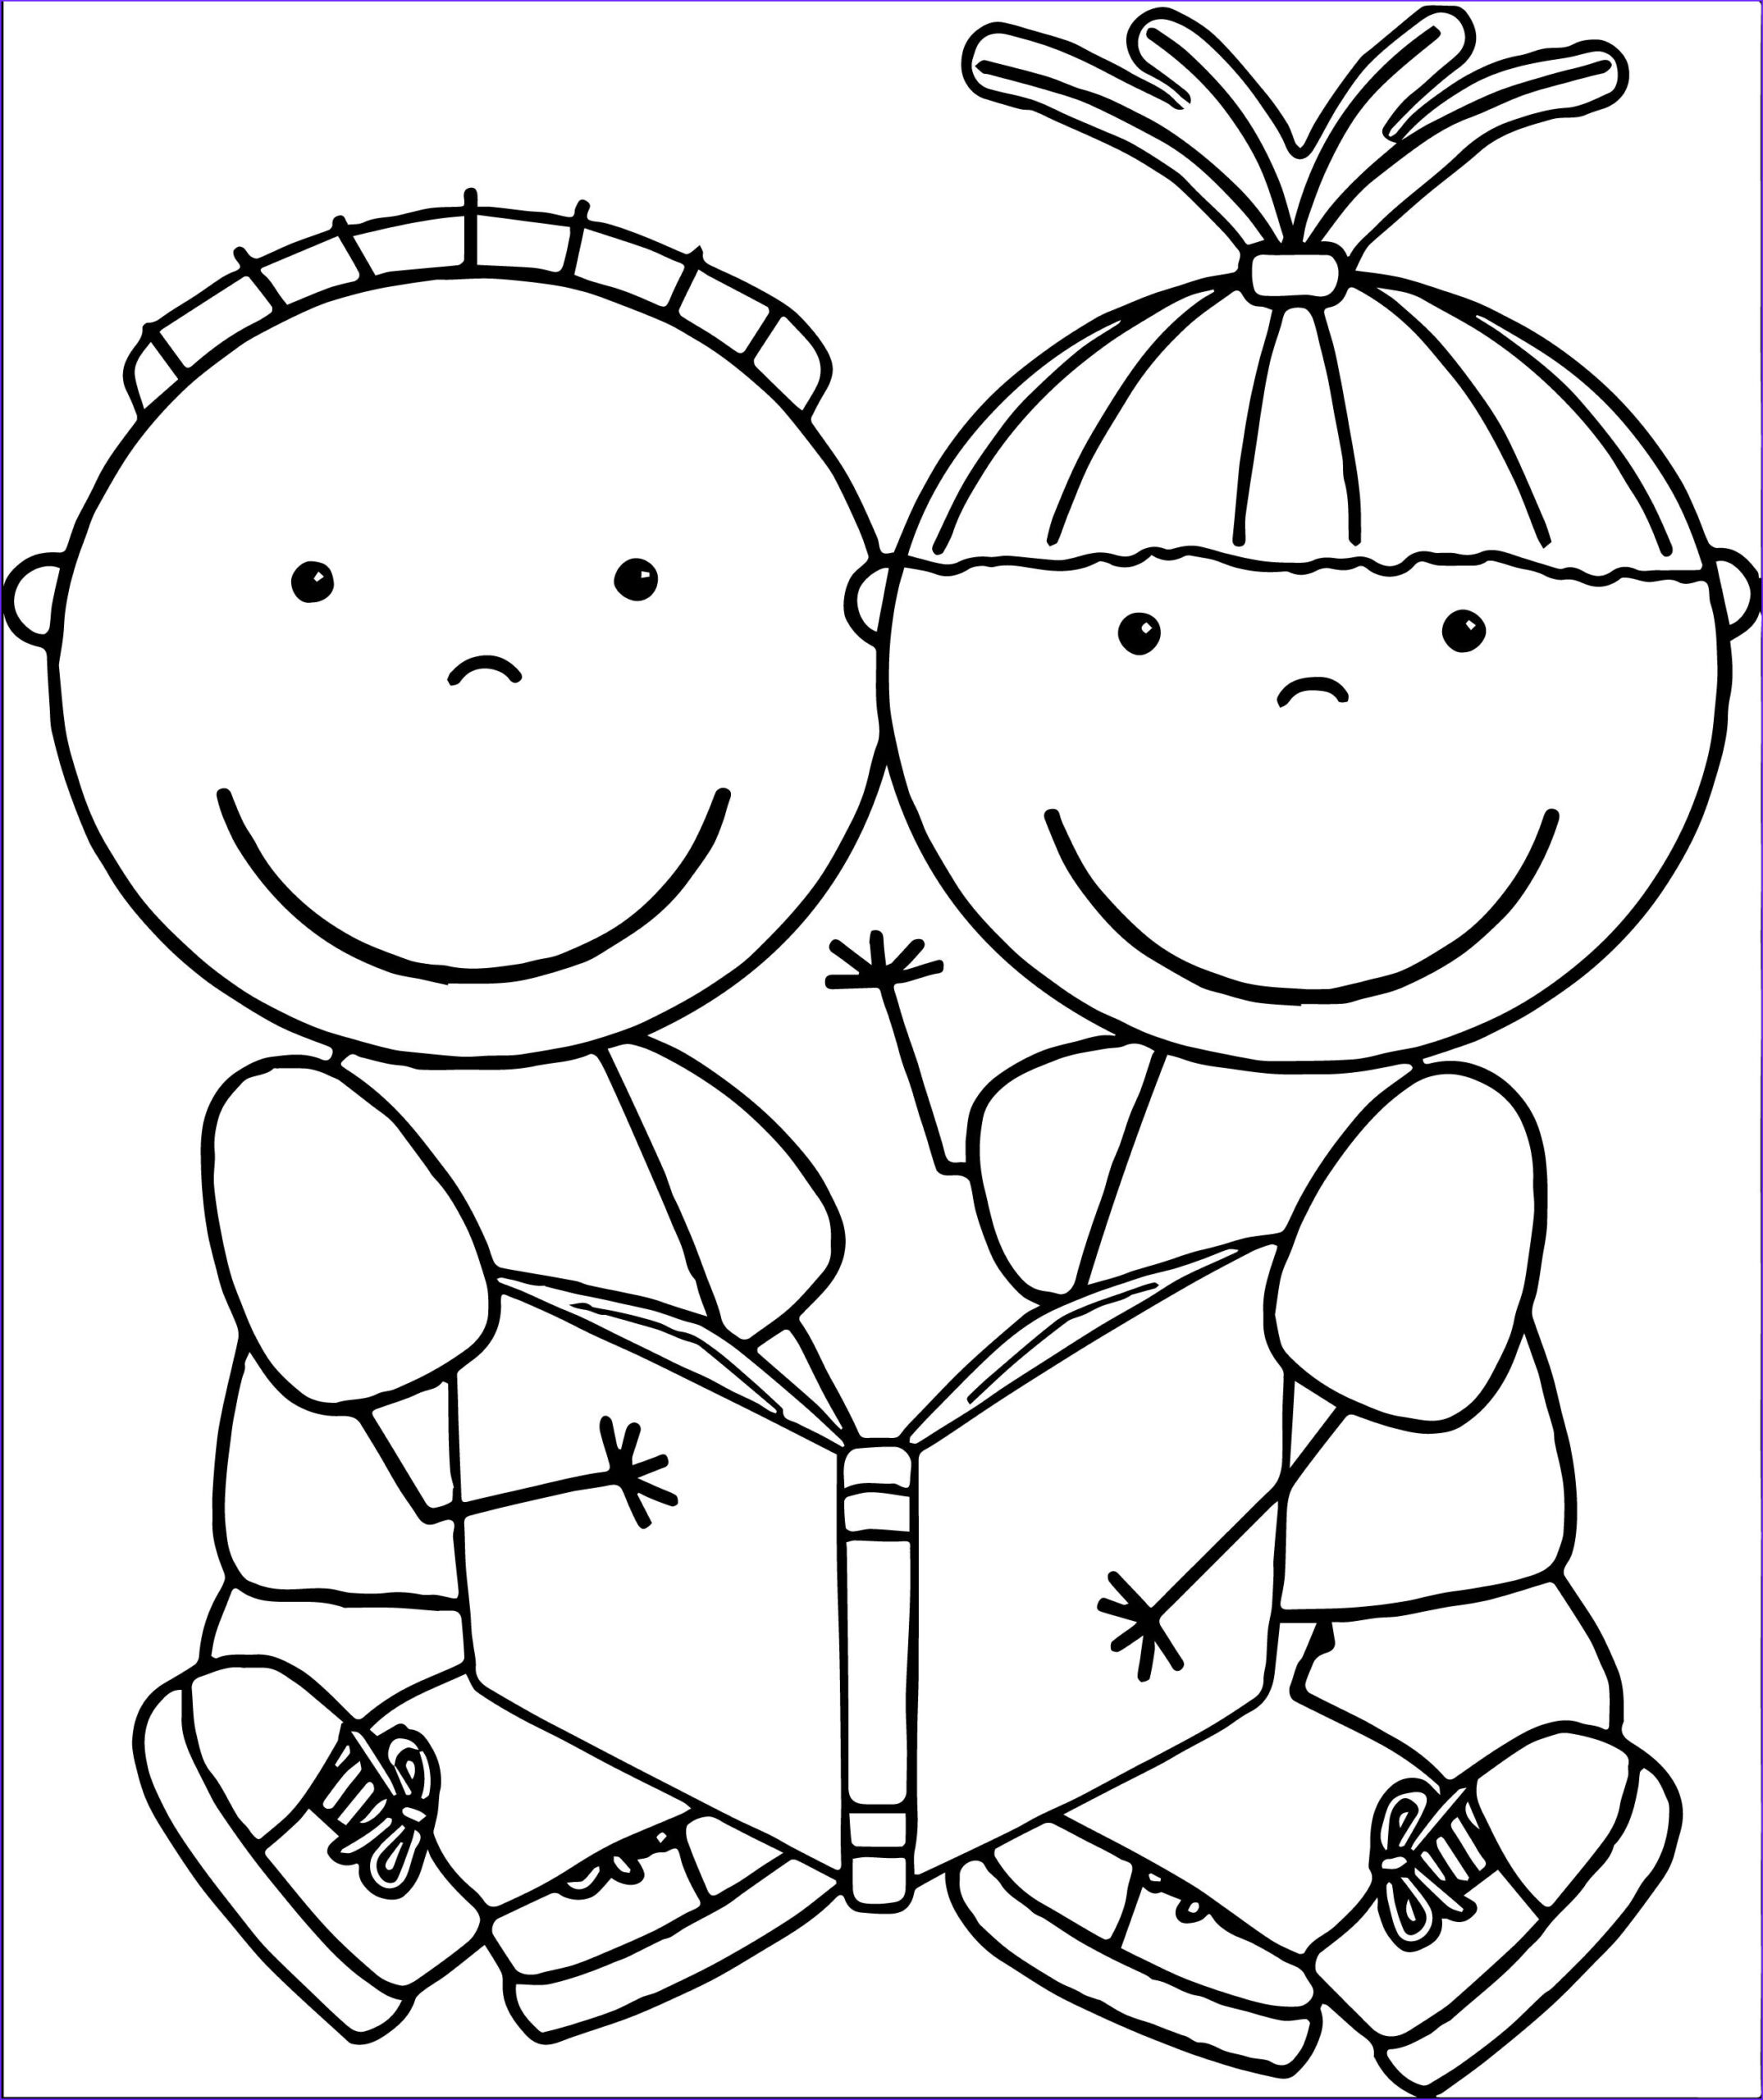 Learning Coloring Page Best Of Images Free Educational Clipart Free Clip Art Children Reading